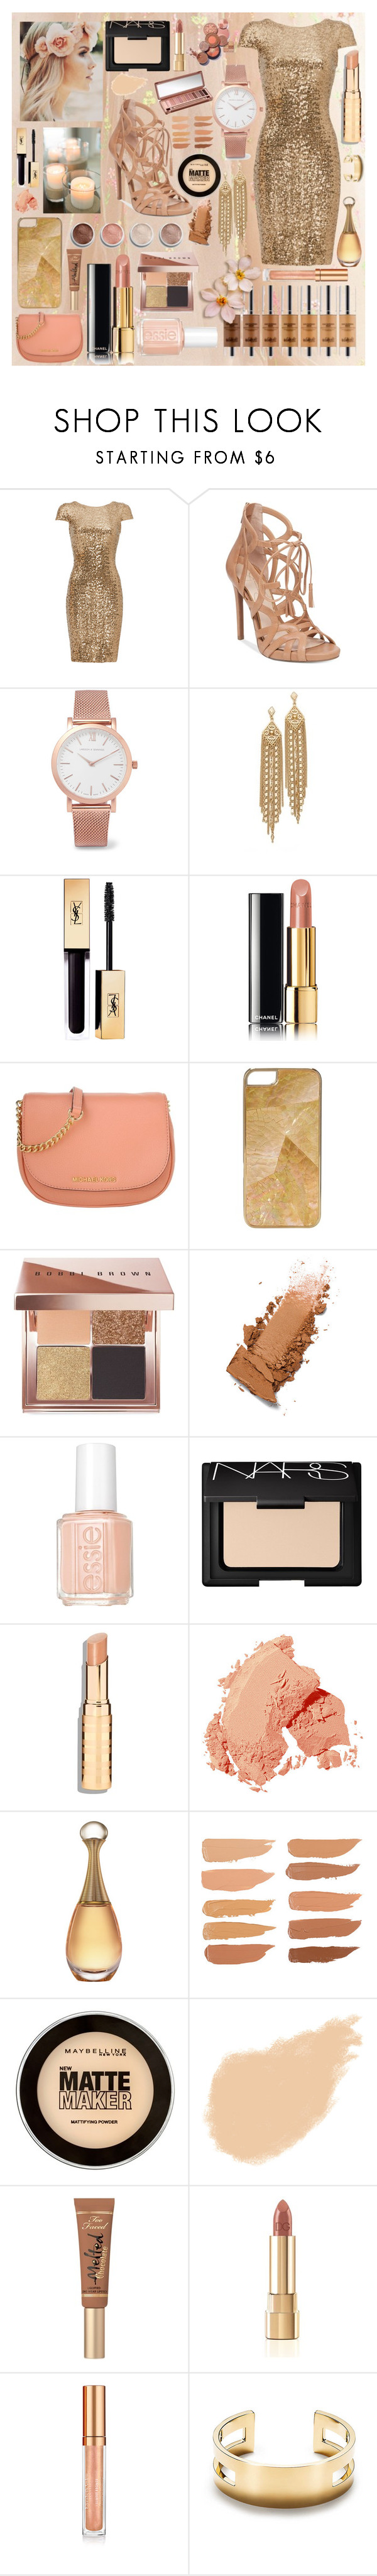 """""""Golden Blossom"""" by daisyxz ❤ liked on Polyvore featuring Badgley Mischka, Jessica Simpson, Larsson & Jennings, Capwell + Co, Chanel, Michael Kors, Rafé New York, Urban Decay, Terre Mère and Bobbi Brown Cosmetics"""